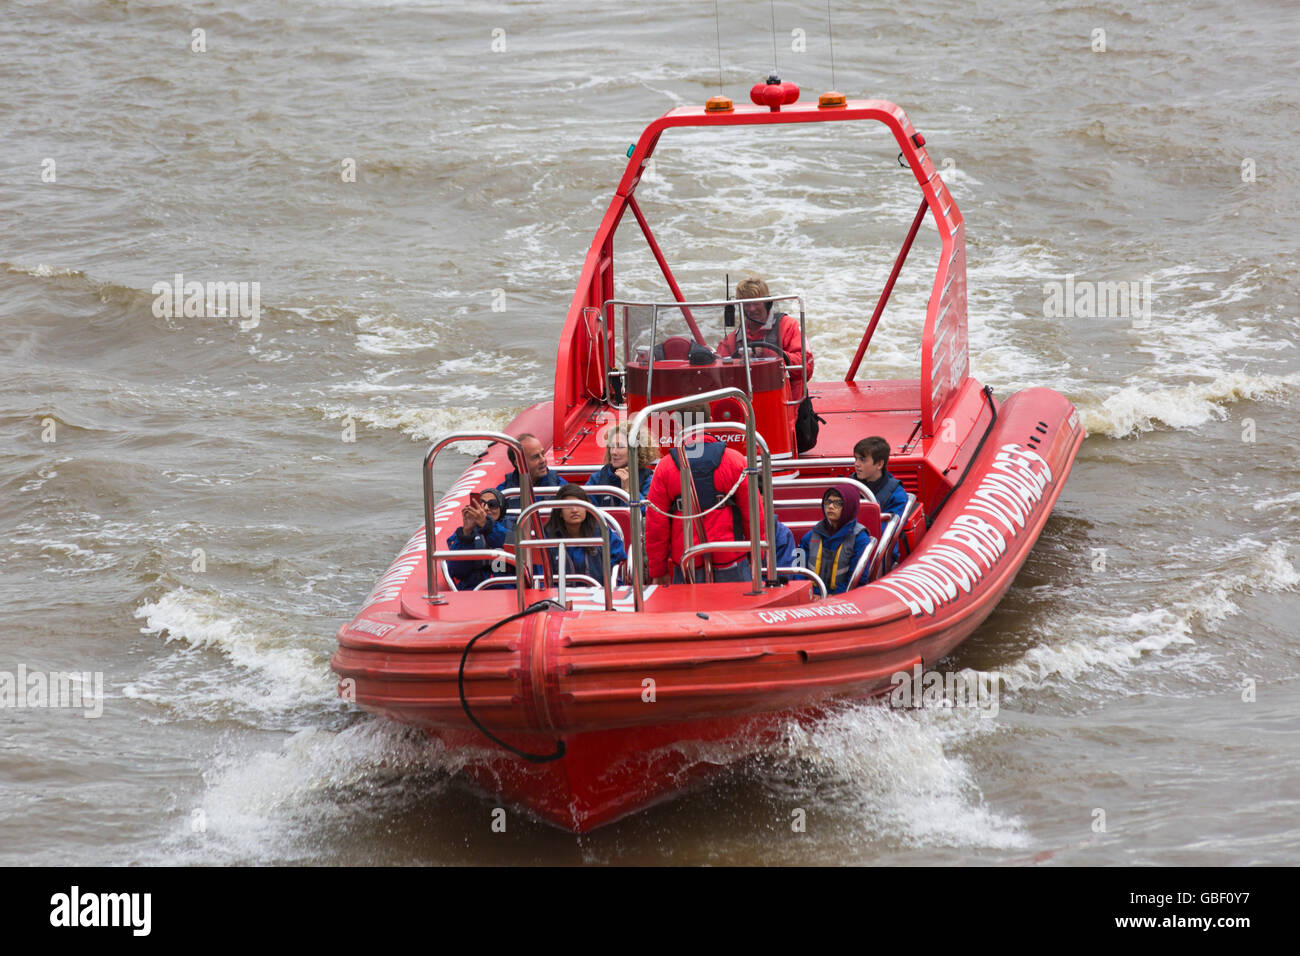 Tourists experiencing ride on Captain Rocket London Rib Voyages on River Thames, London in July - Stock Image